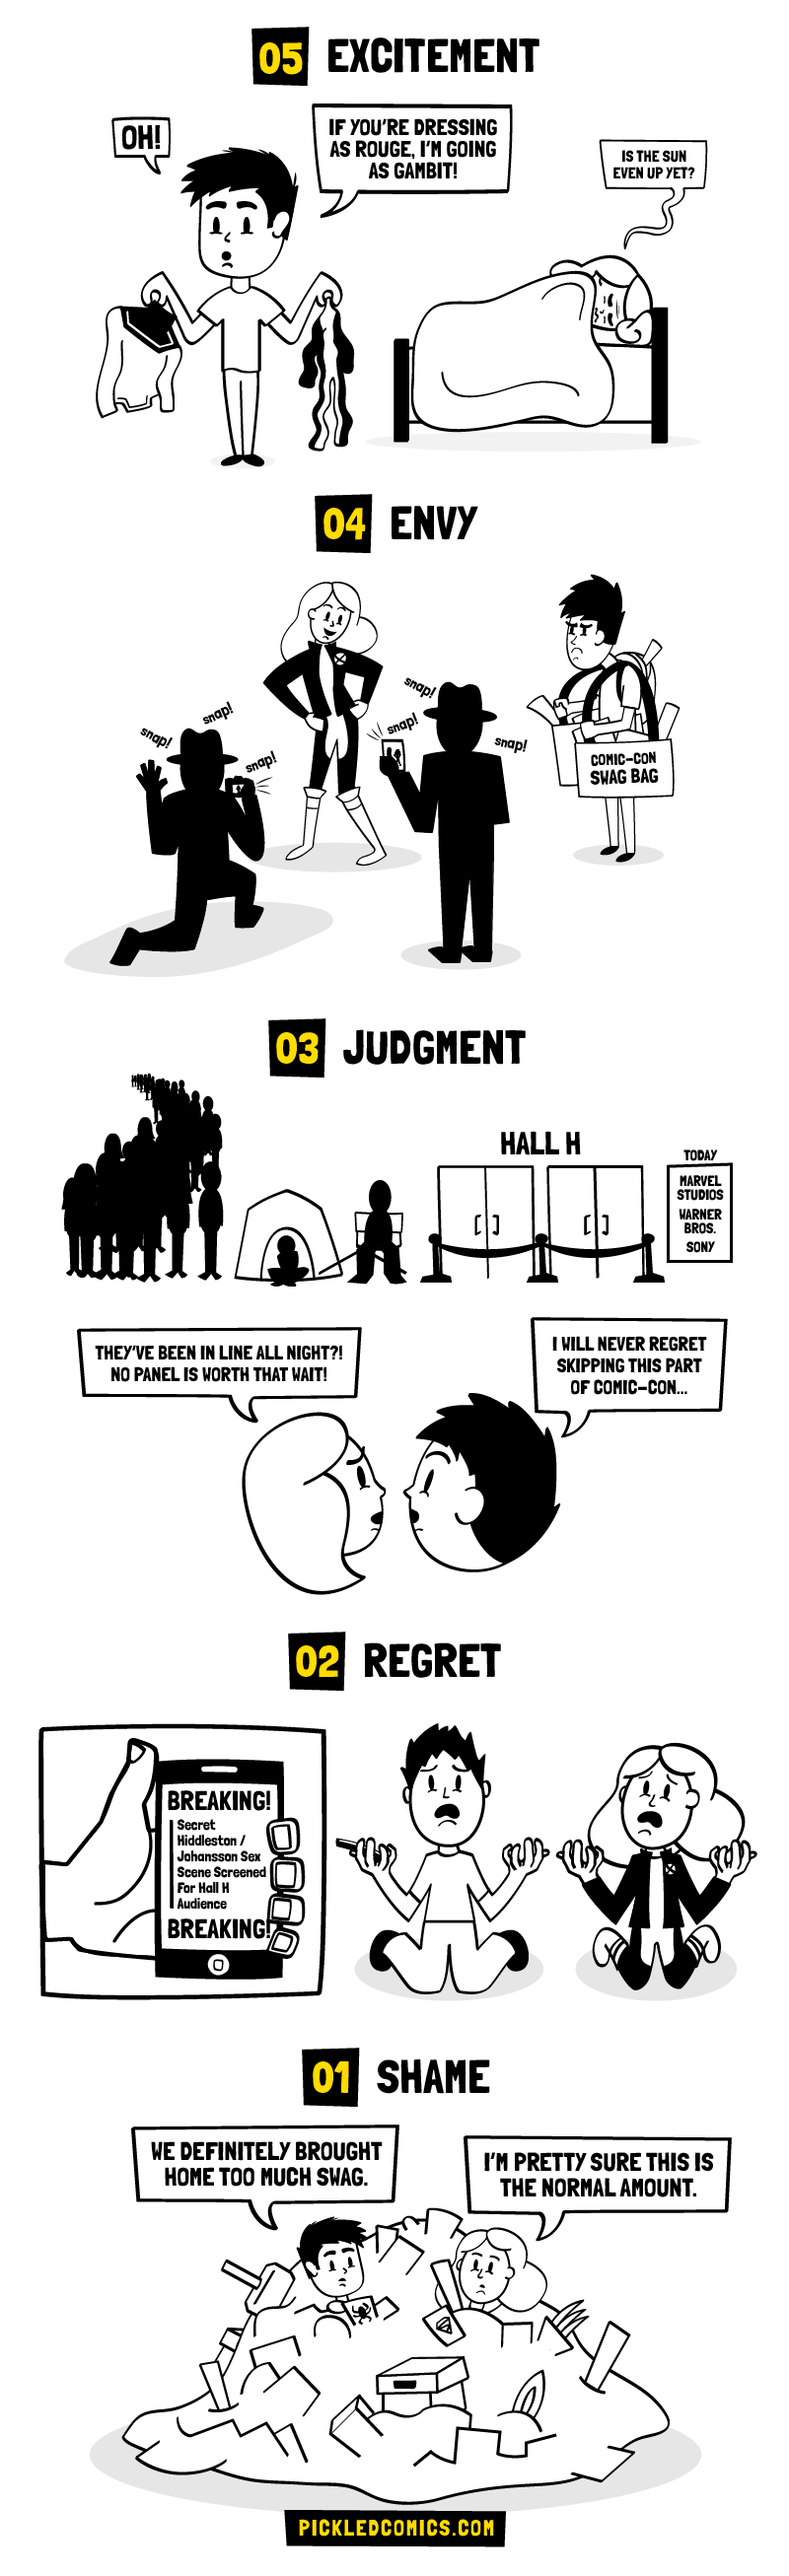 The five stages of visiting Comic-Con. Excitement, Envy, Judgment, Regret, and Shame.